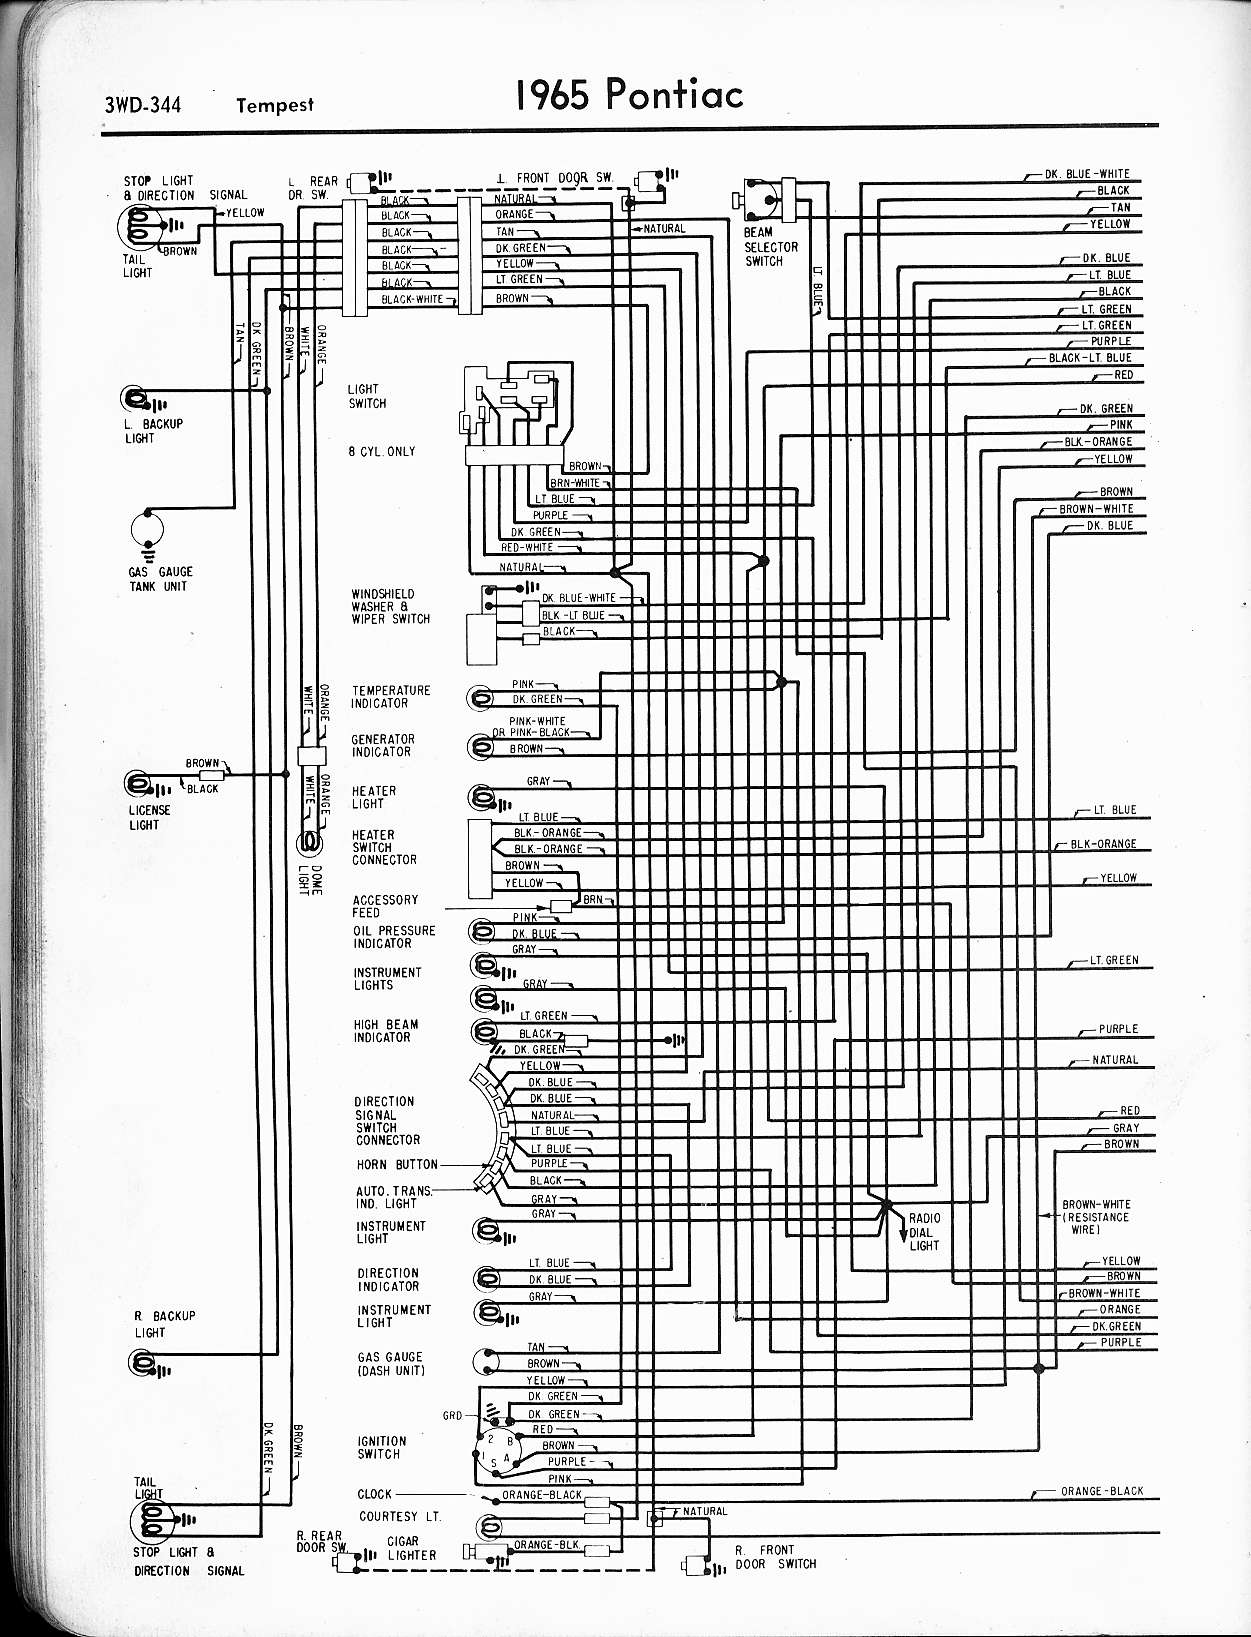 1968 Mustang Dash Wiring Diagram | Wiring Diagram on chevelle wiring schematics, chevelle power window schematic, chevelle wiper motor wiring, chevelle vacuum diagram, 1970 chevelle fuse block diagram, chevelle fuse box, chevelle led brake lights, 1970 chevelle dash diagram, chevelle engine wiring diagrams,